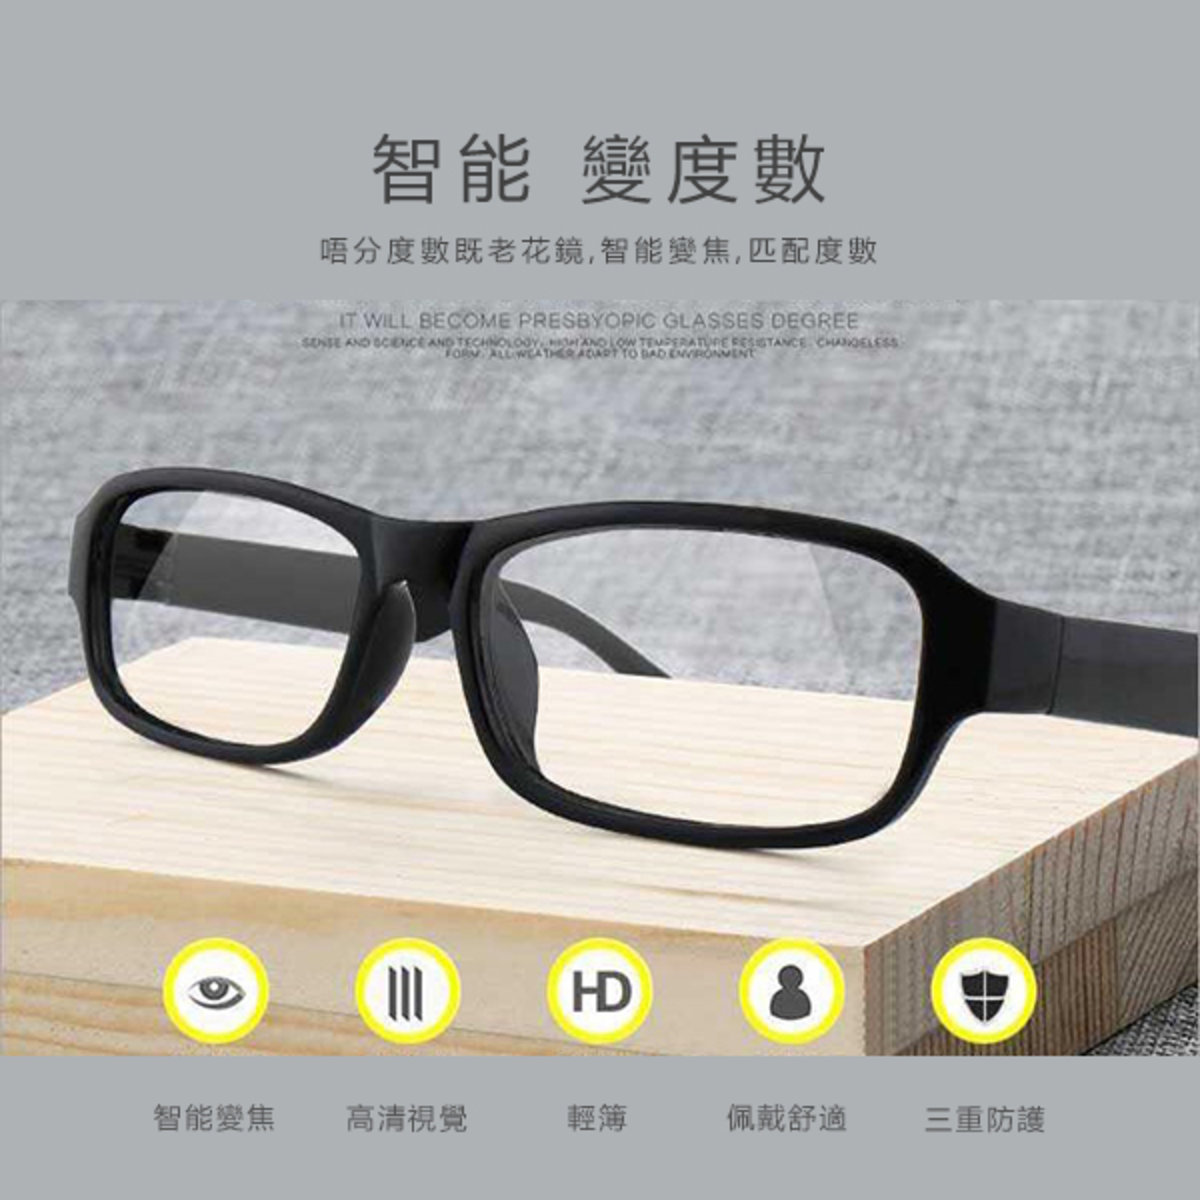 Multi-function automatic zoom reading glasses (anti-Blu-ray)